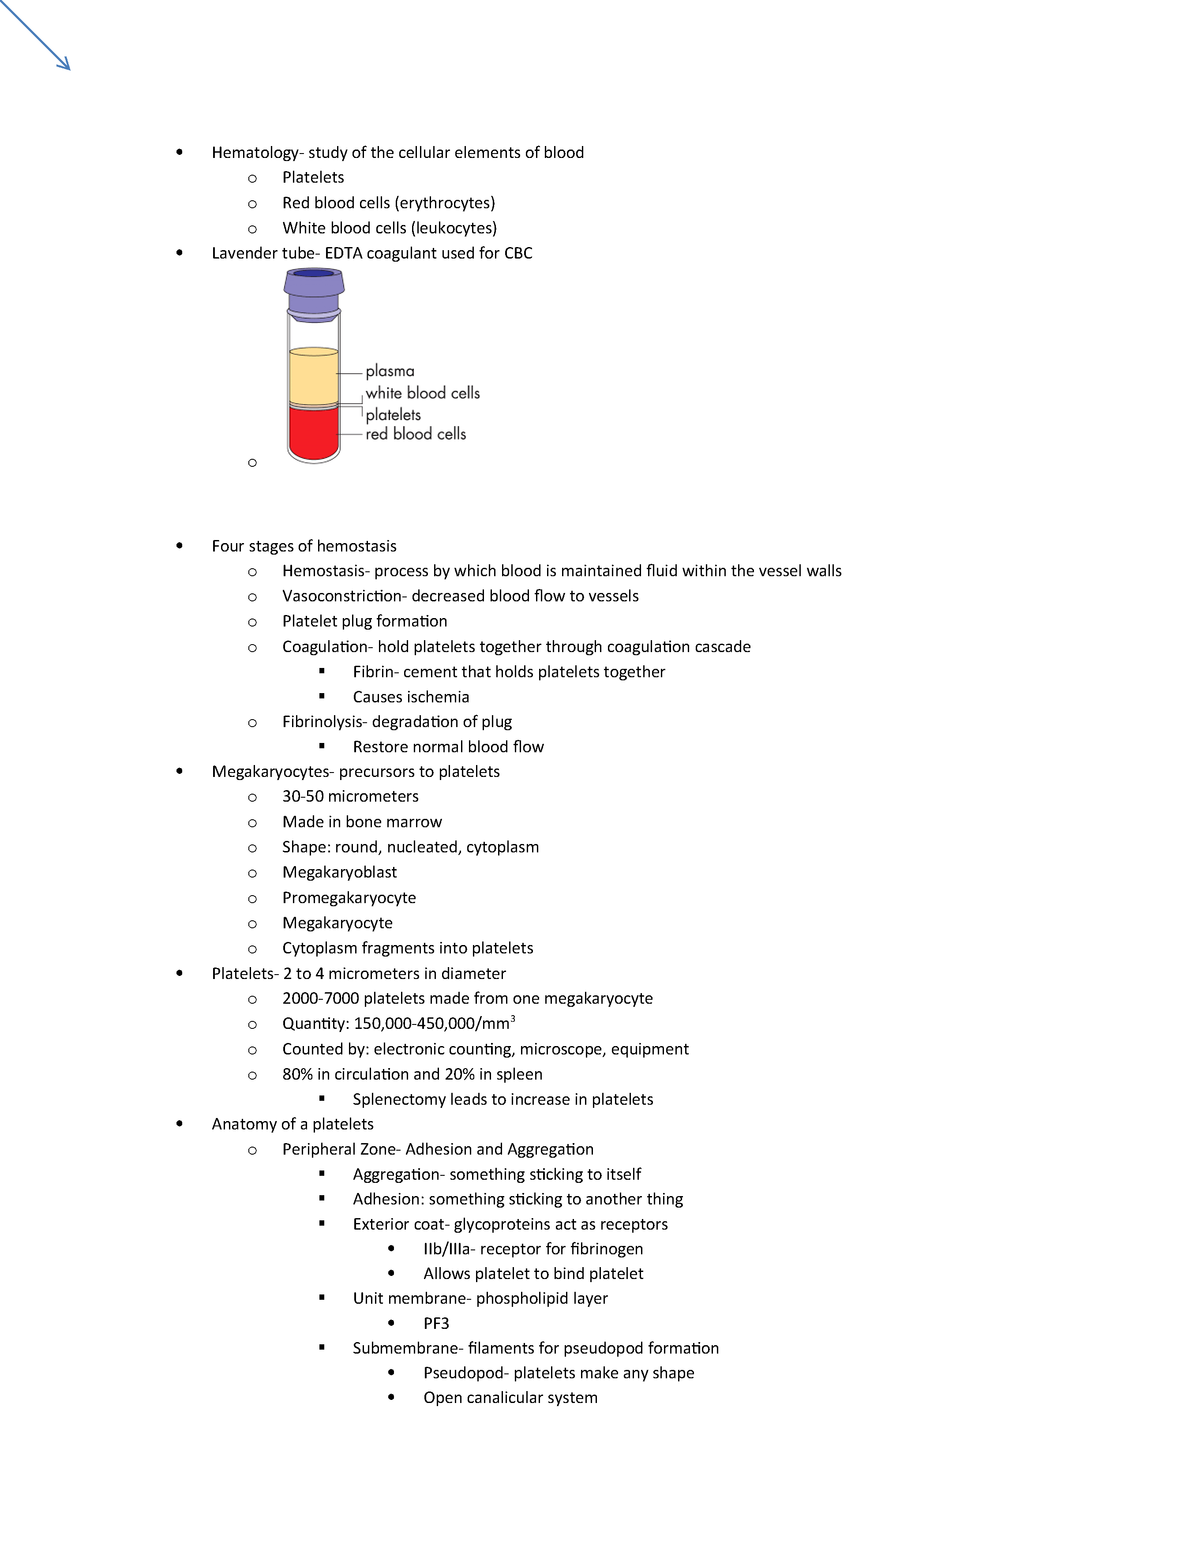 Final exam, questions and answers - medt 404 Hematology I